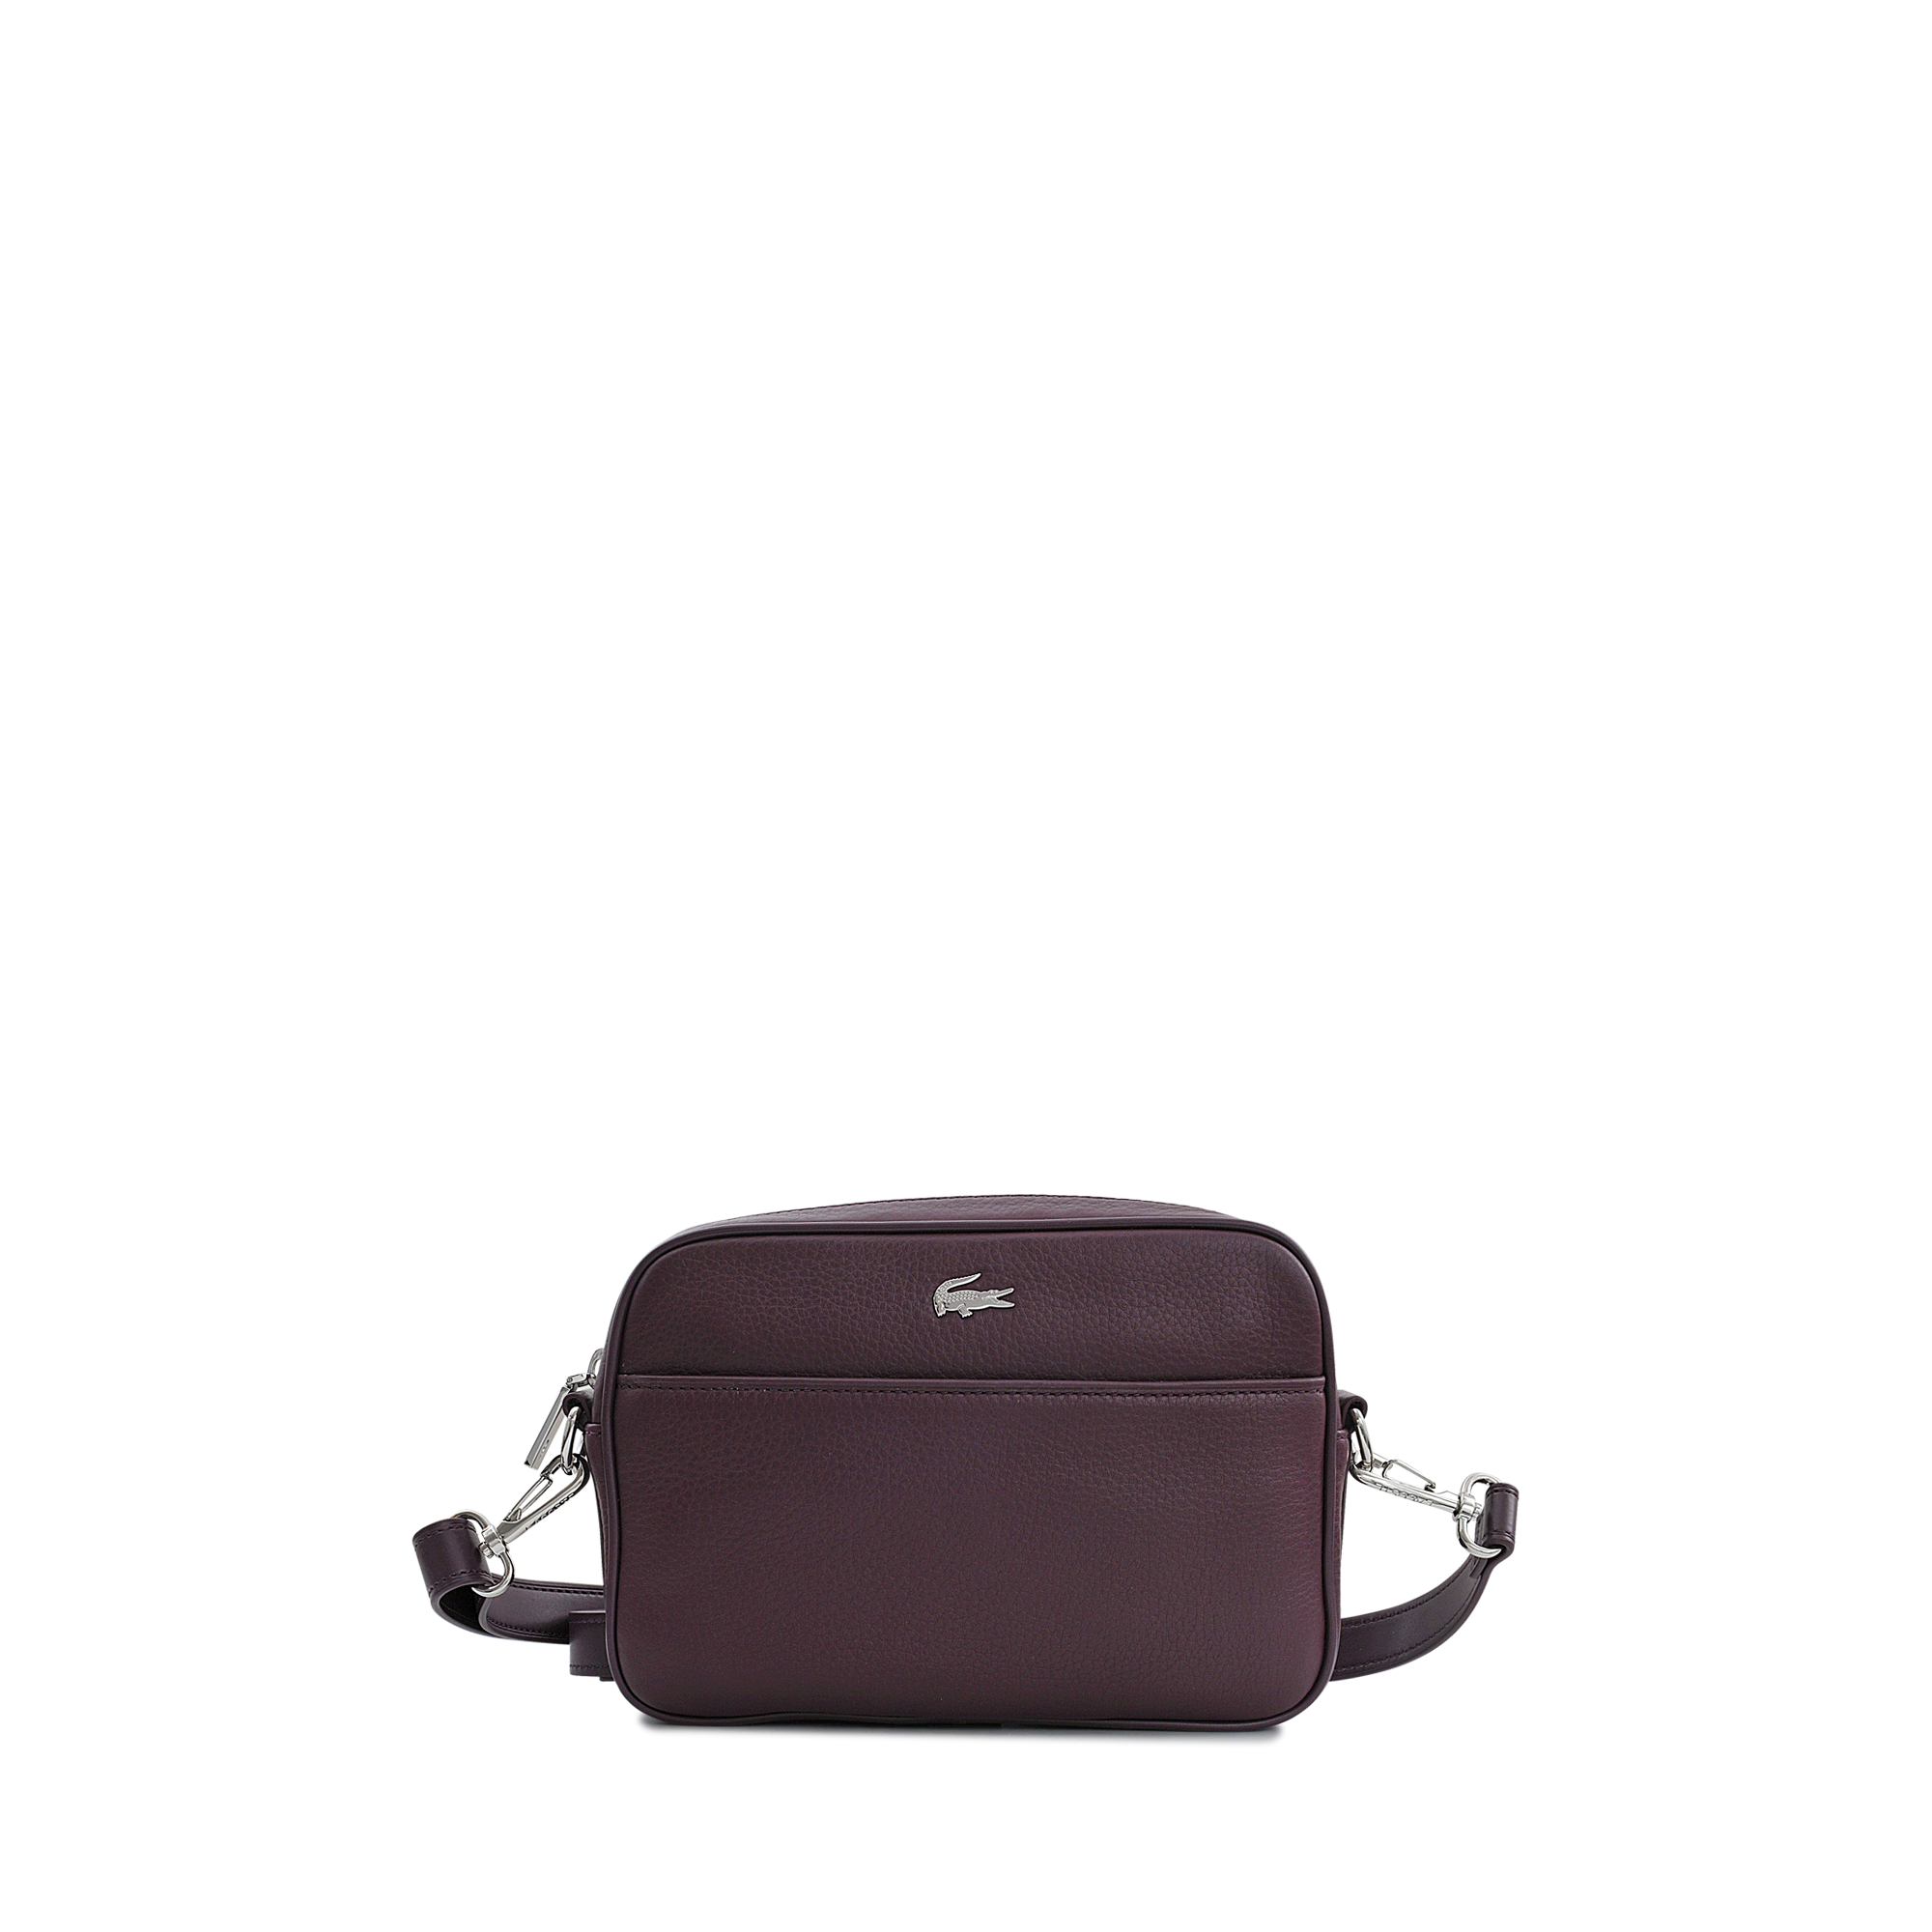 lacoste bags - photo #18